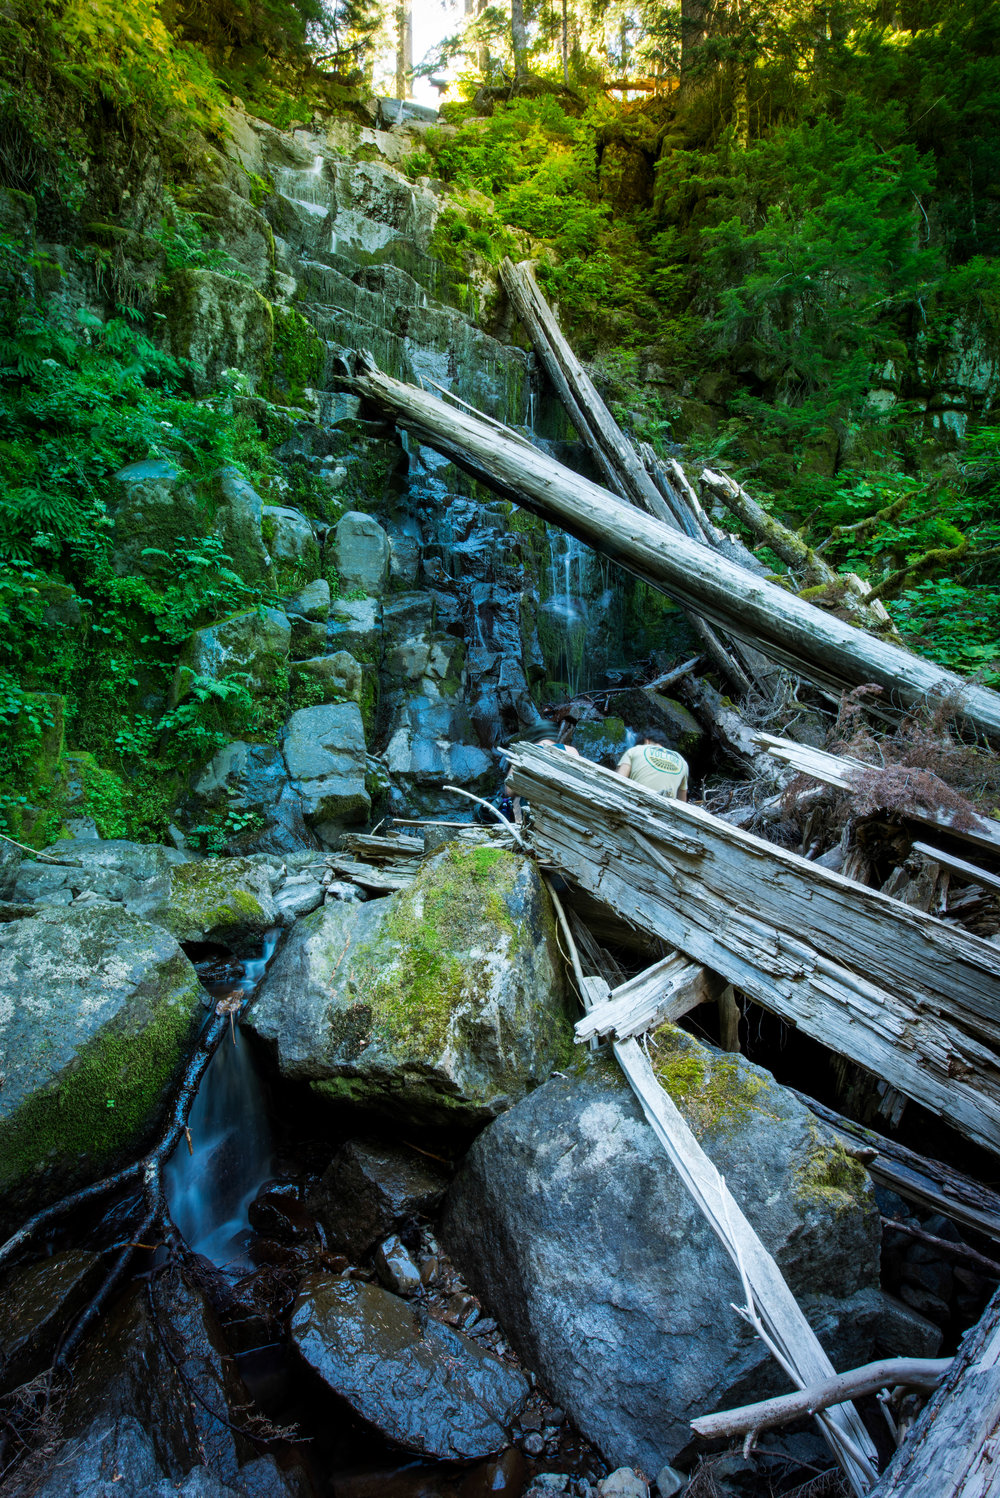 This waterfall is not on any map, website, discussion board, or anywhere on the internet. I plan on going back to take out those logs leaning against it, and then I want to think of a name. But I will not tell anyone where this secret place is, so don't ask.